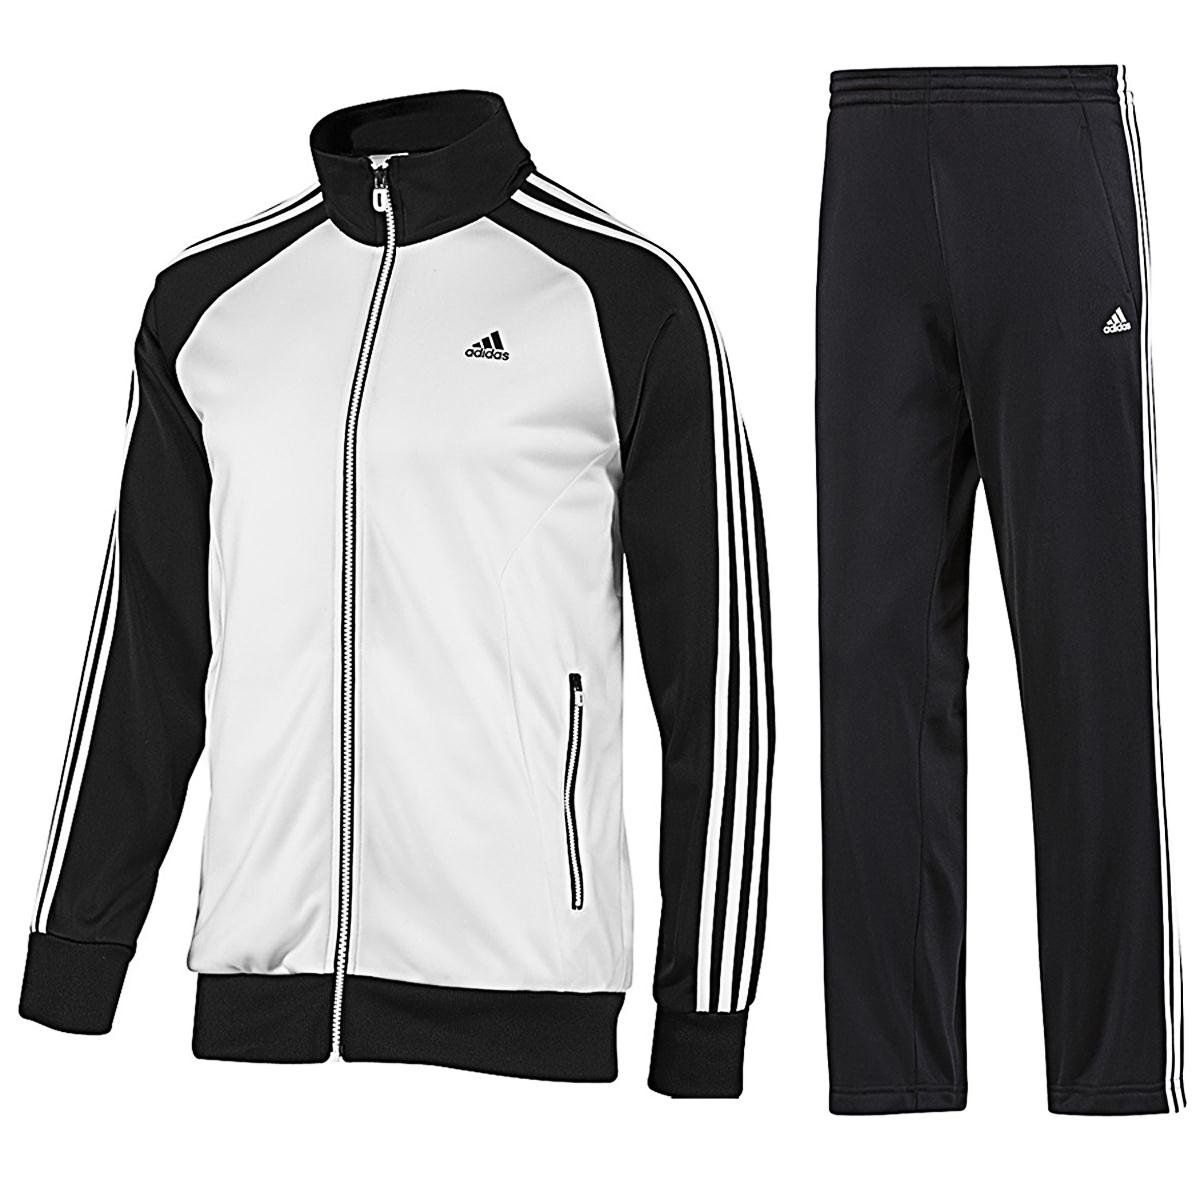 a4540f8d54220 Adidas Mens Tracksuit JogSuit 3S Riberio Retro Black/White Navy/Red ...